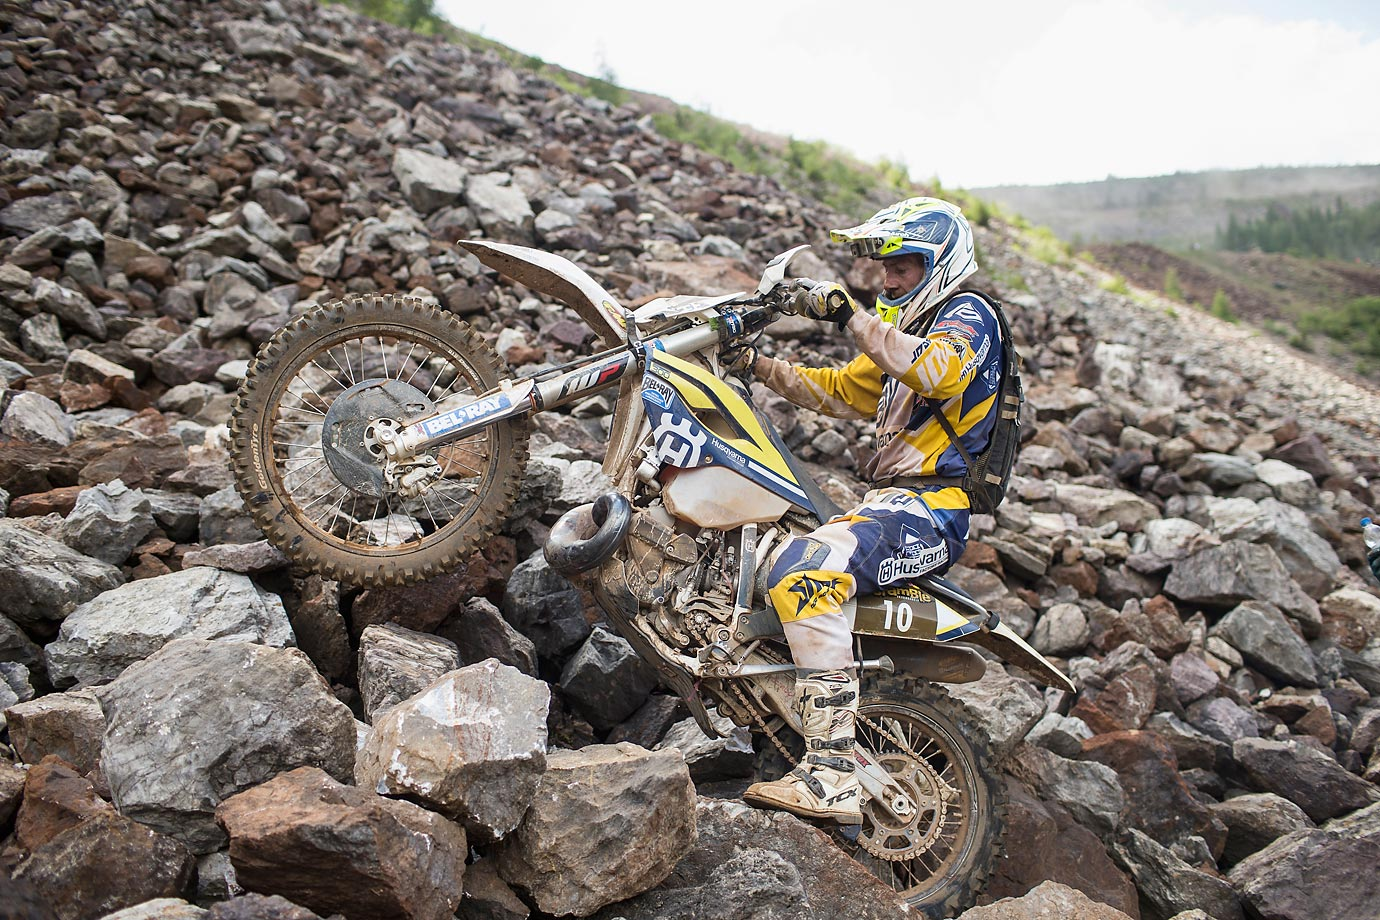 Great Britain's Graham Jarvis makes some noise at the Red Bull Hare Scramble in Austria on June 7.